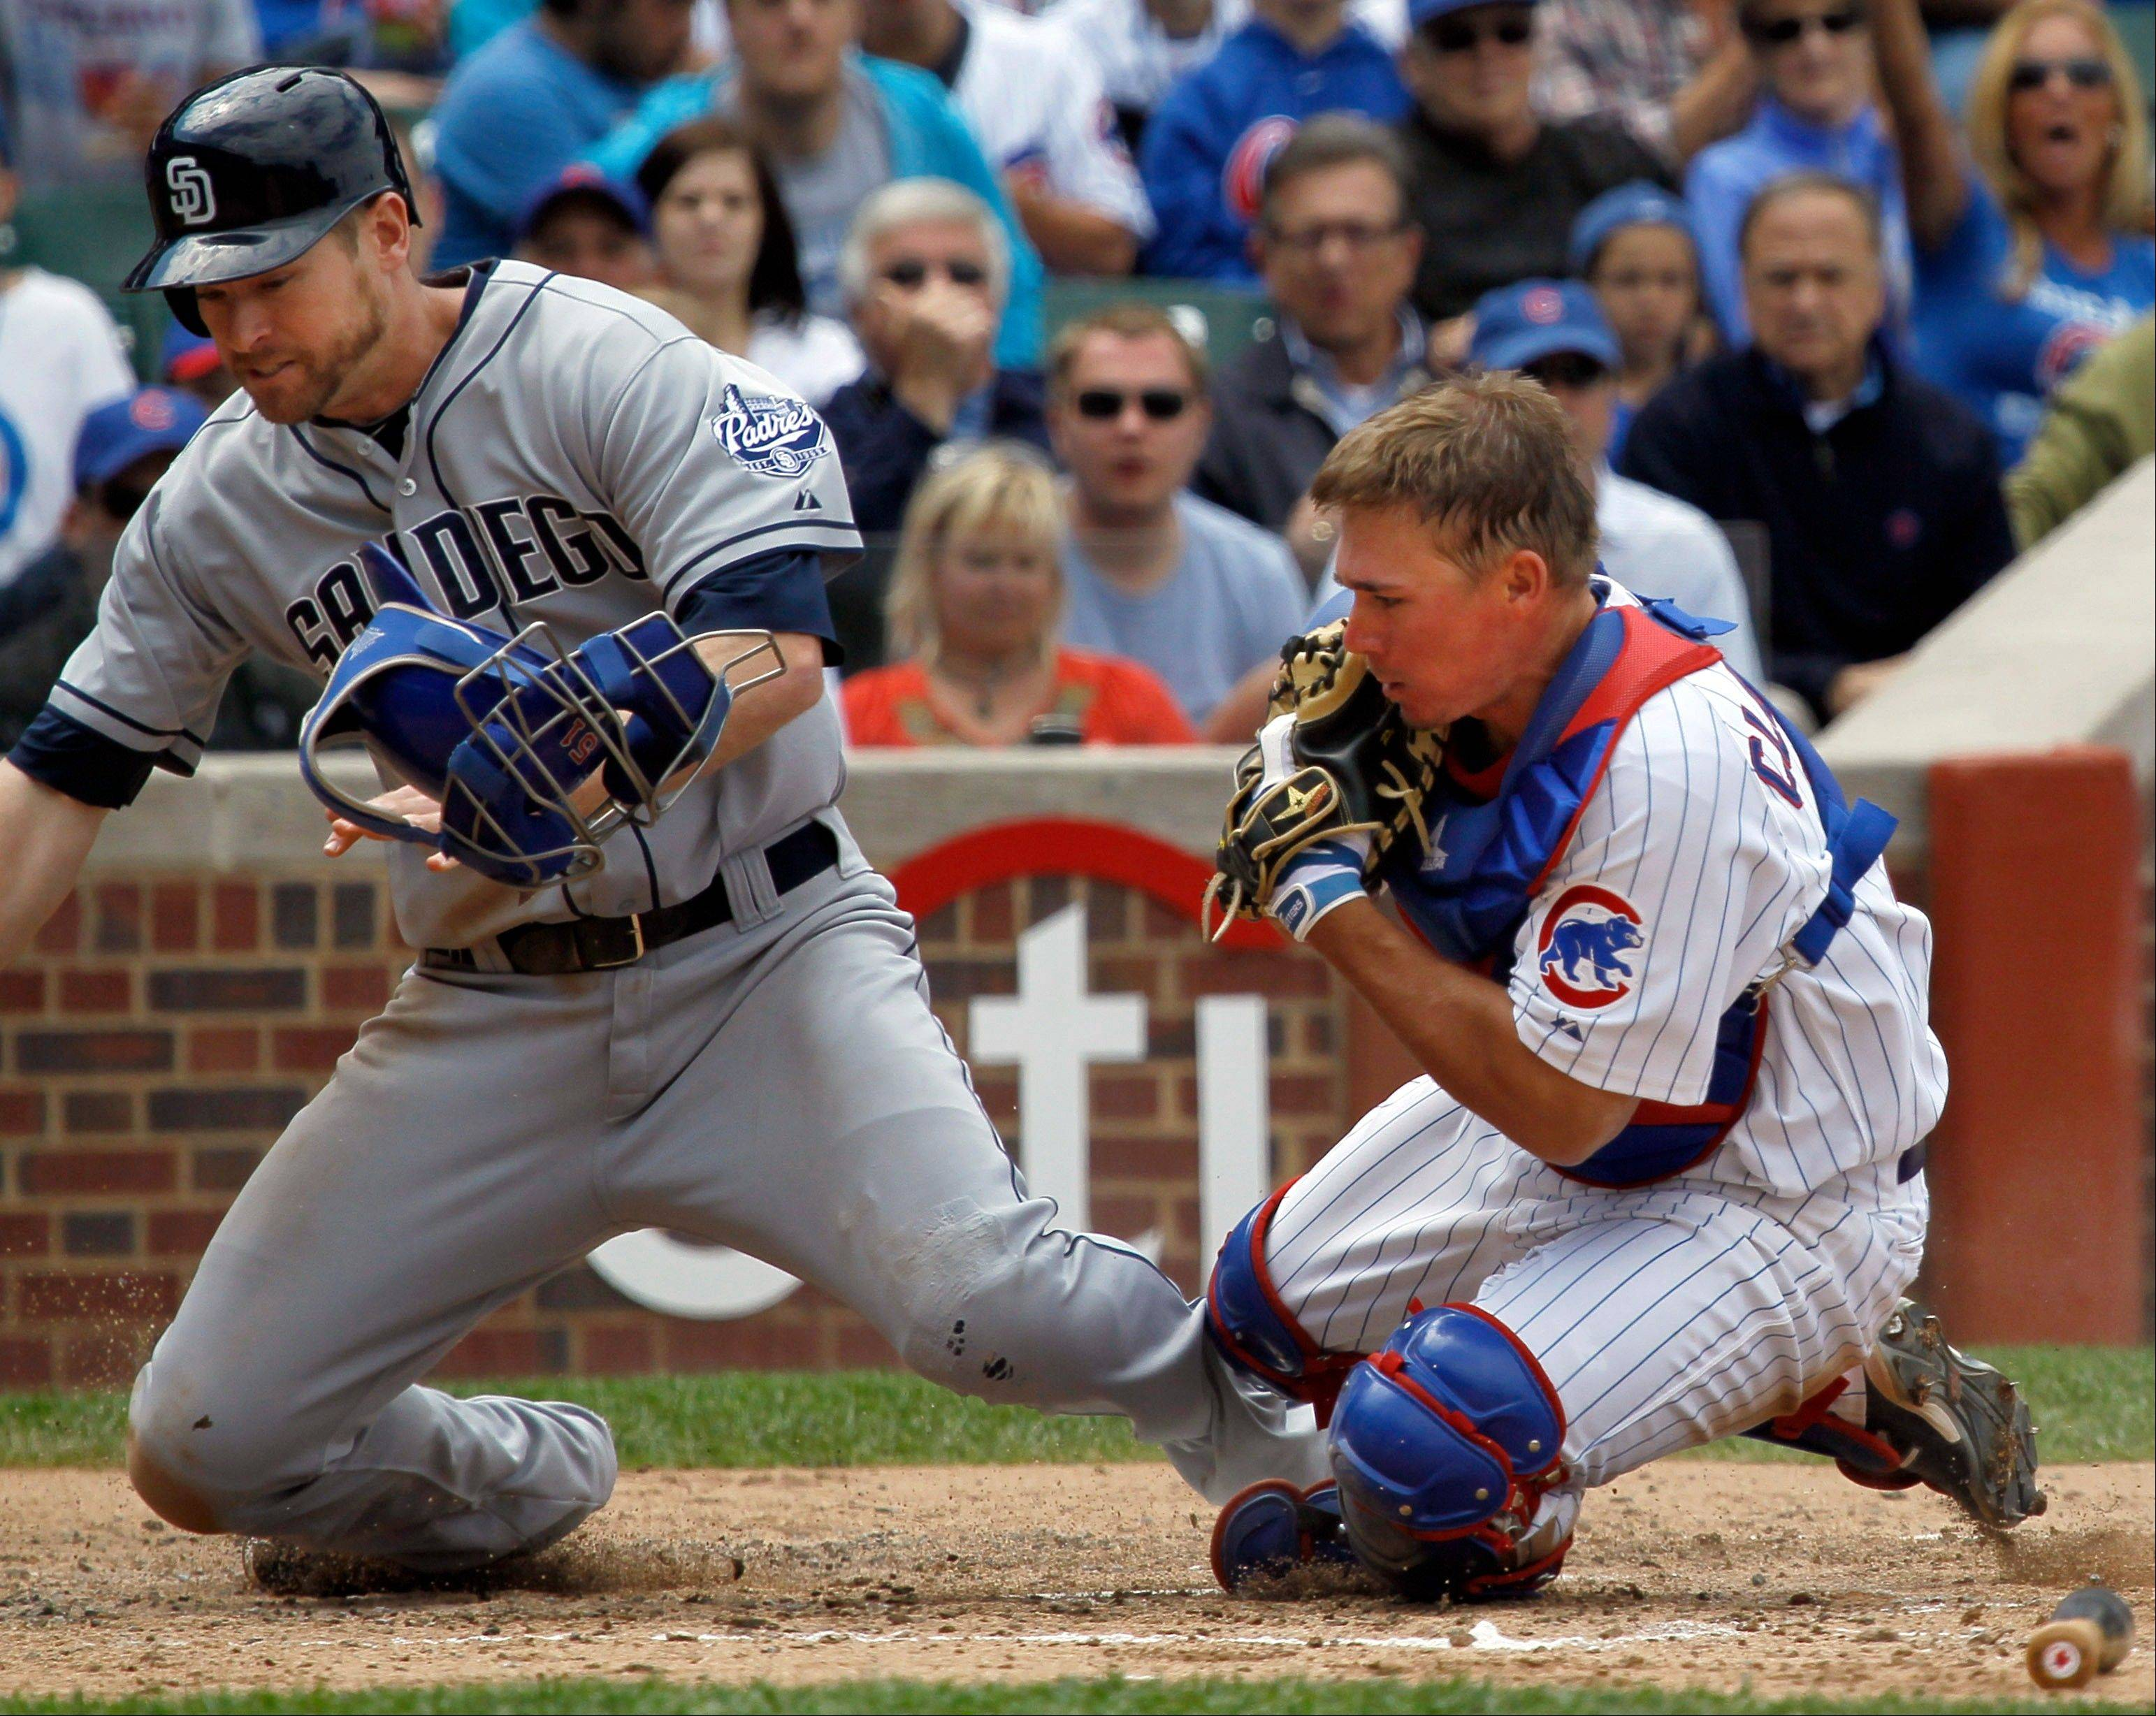 Cubs catcher Steve Clevenger holds onto the ball after tagging out the Padres' Chase Headley at the plate as he tries to score on a fielder's choice in the third inning Wednesday at Wrigley Field.